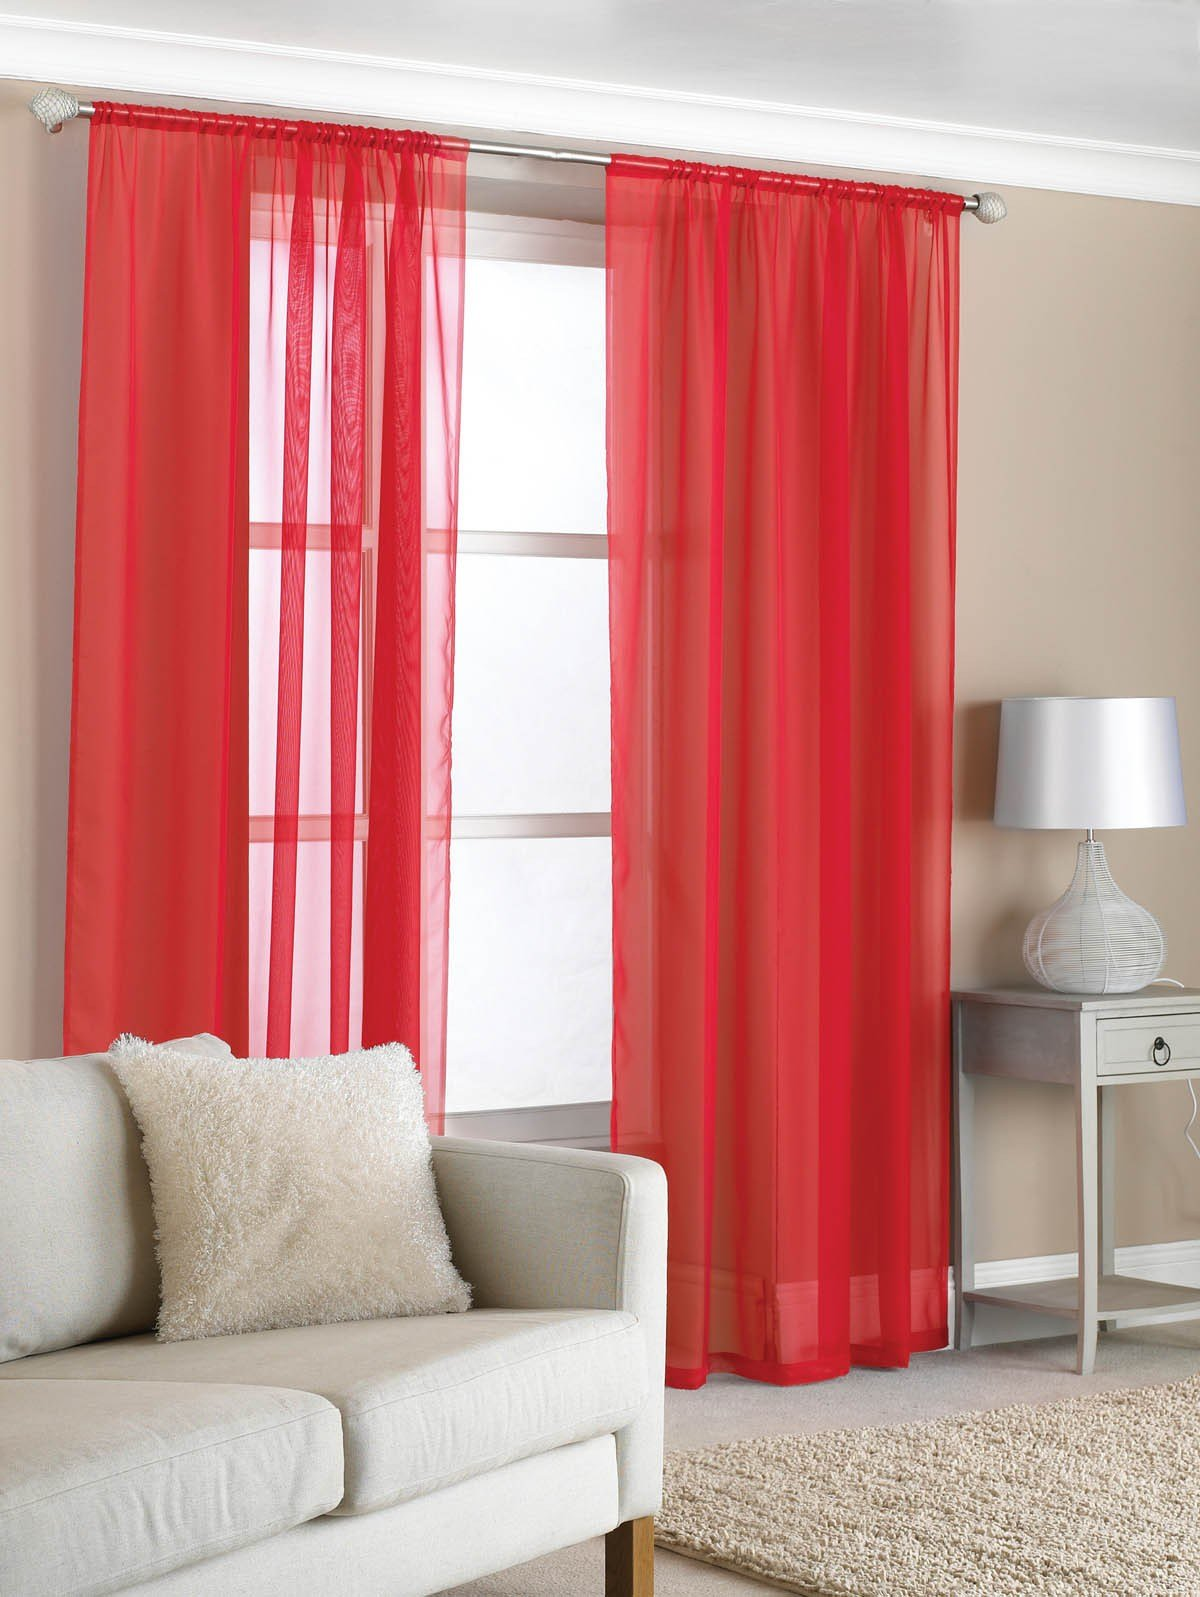 Best Red Curtains Bedroom Red Bedroom Curtains Red Bedroom With Pictures